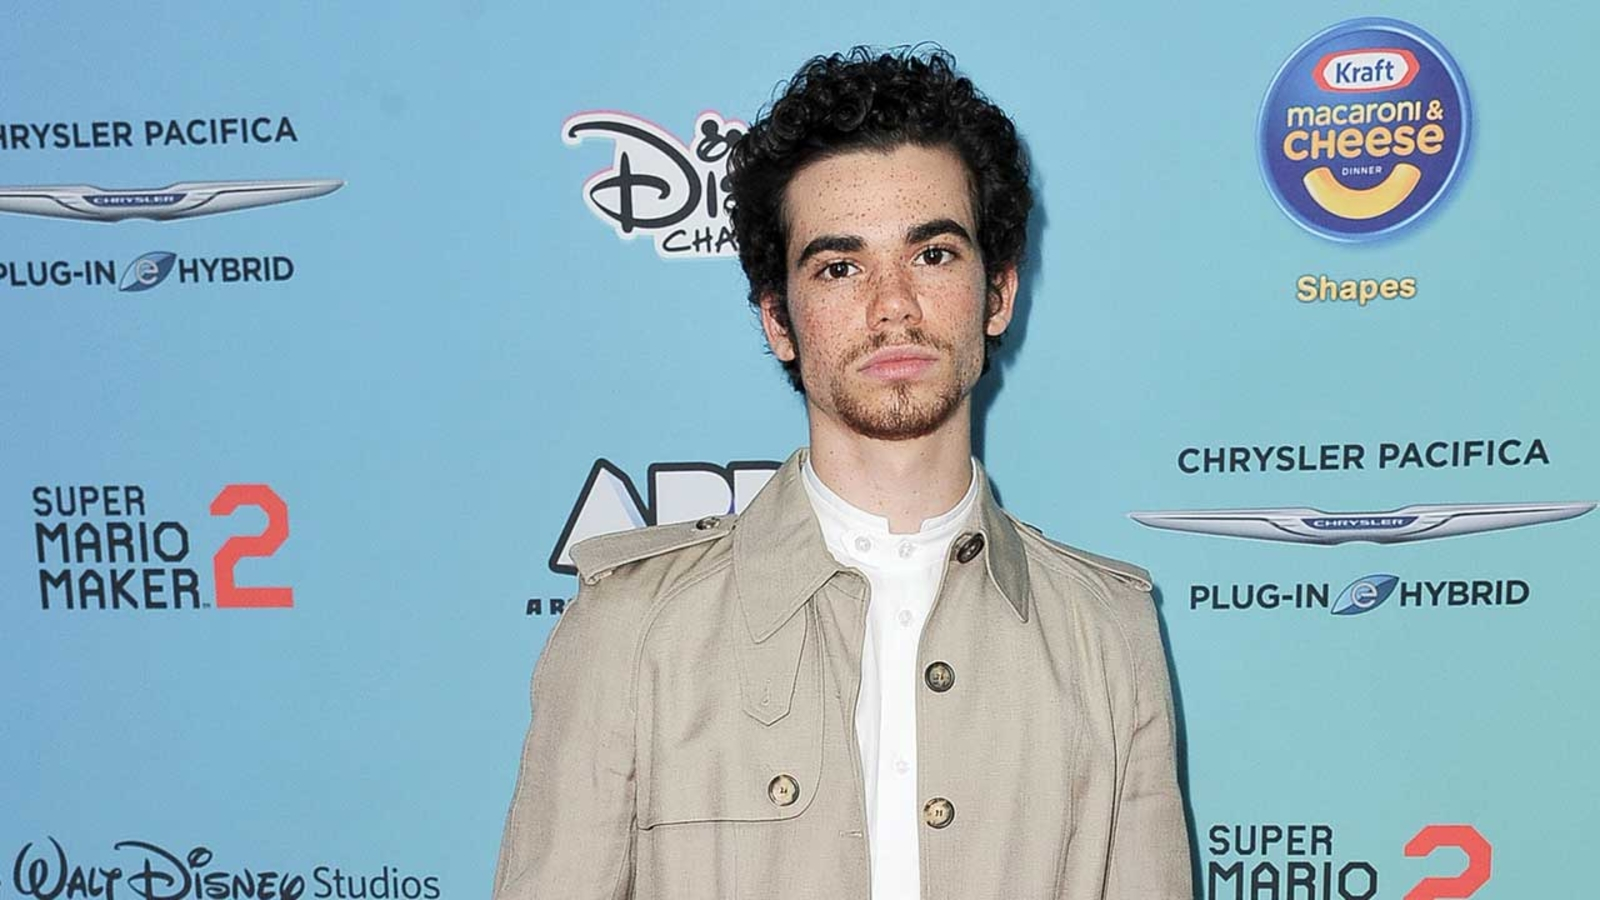 Cameron Boyce Cause Of Death Family Shares Disney Chanel Actor Had Epilepsy 6abc Philadelphia